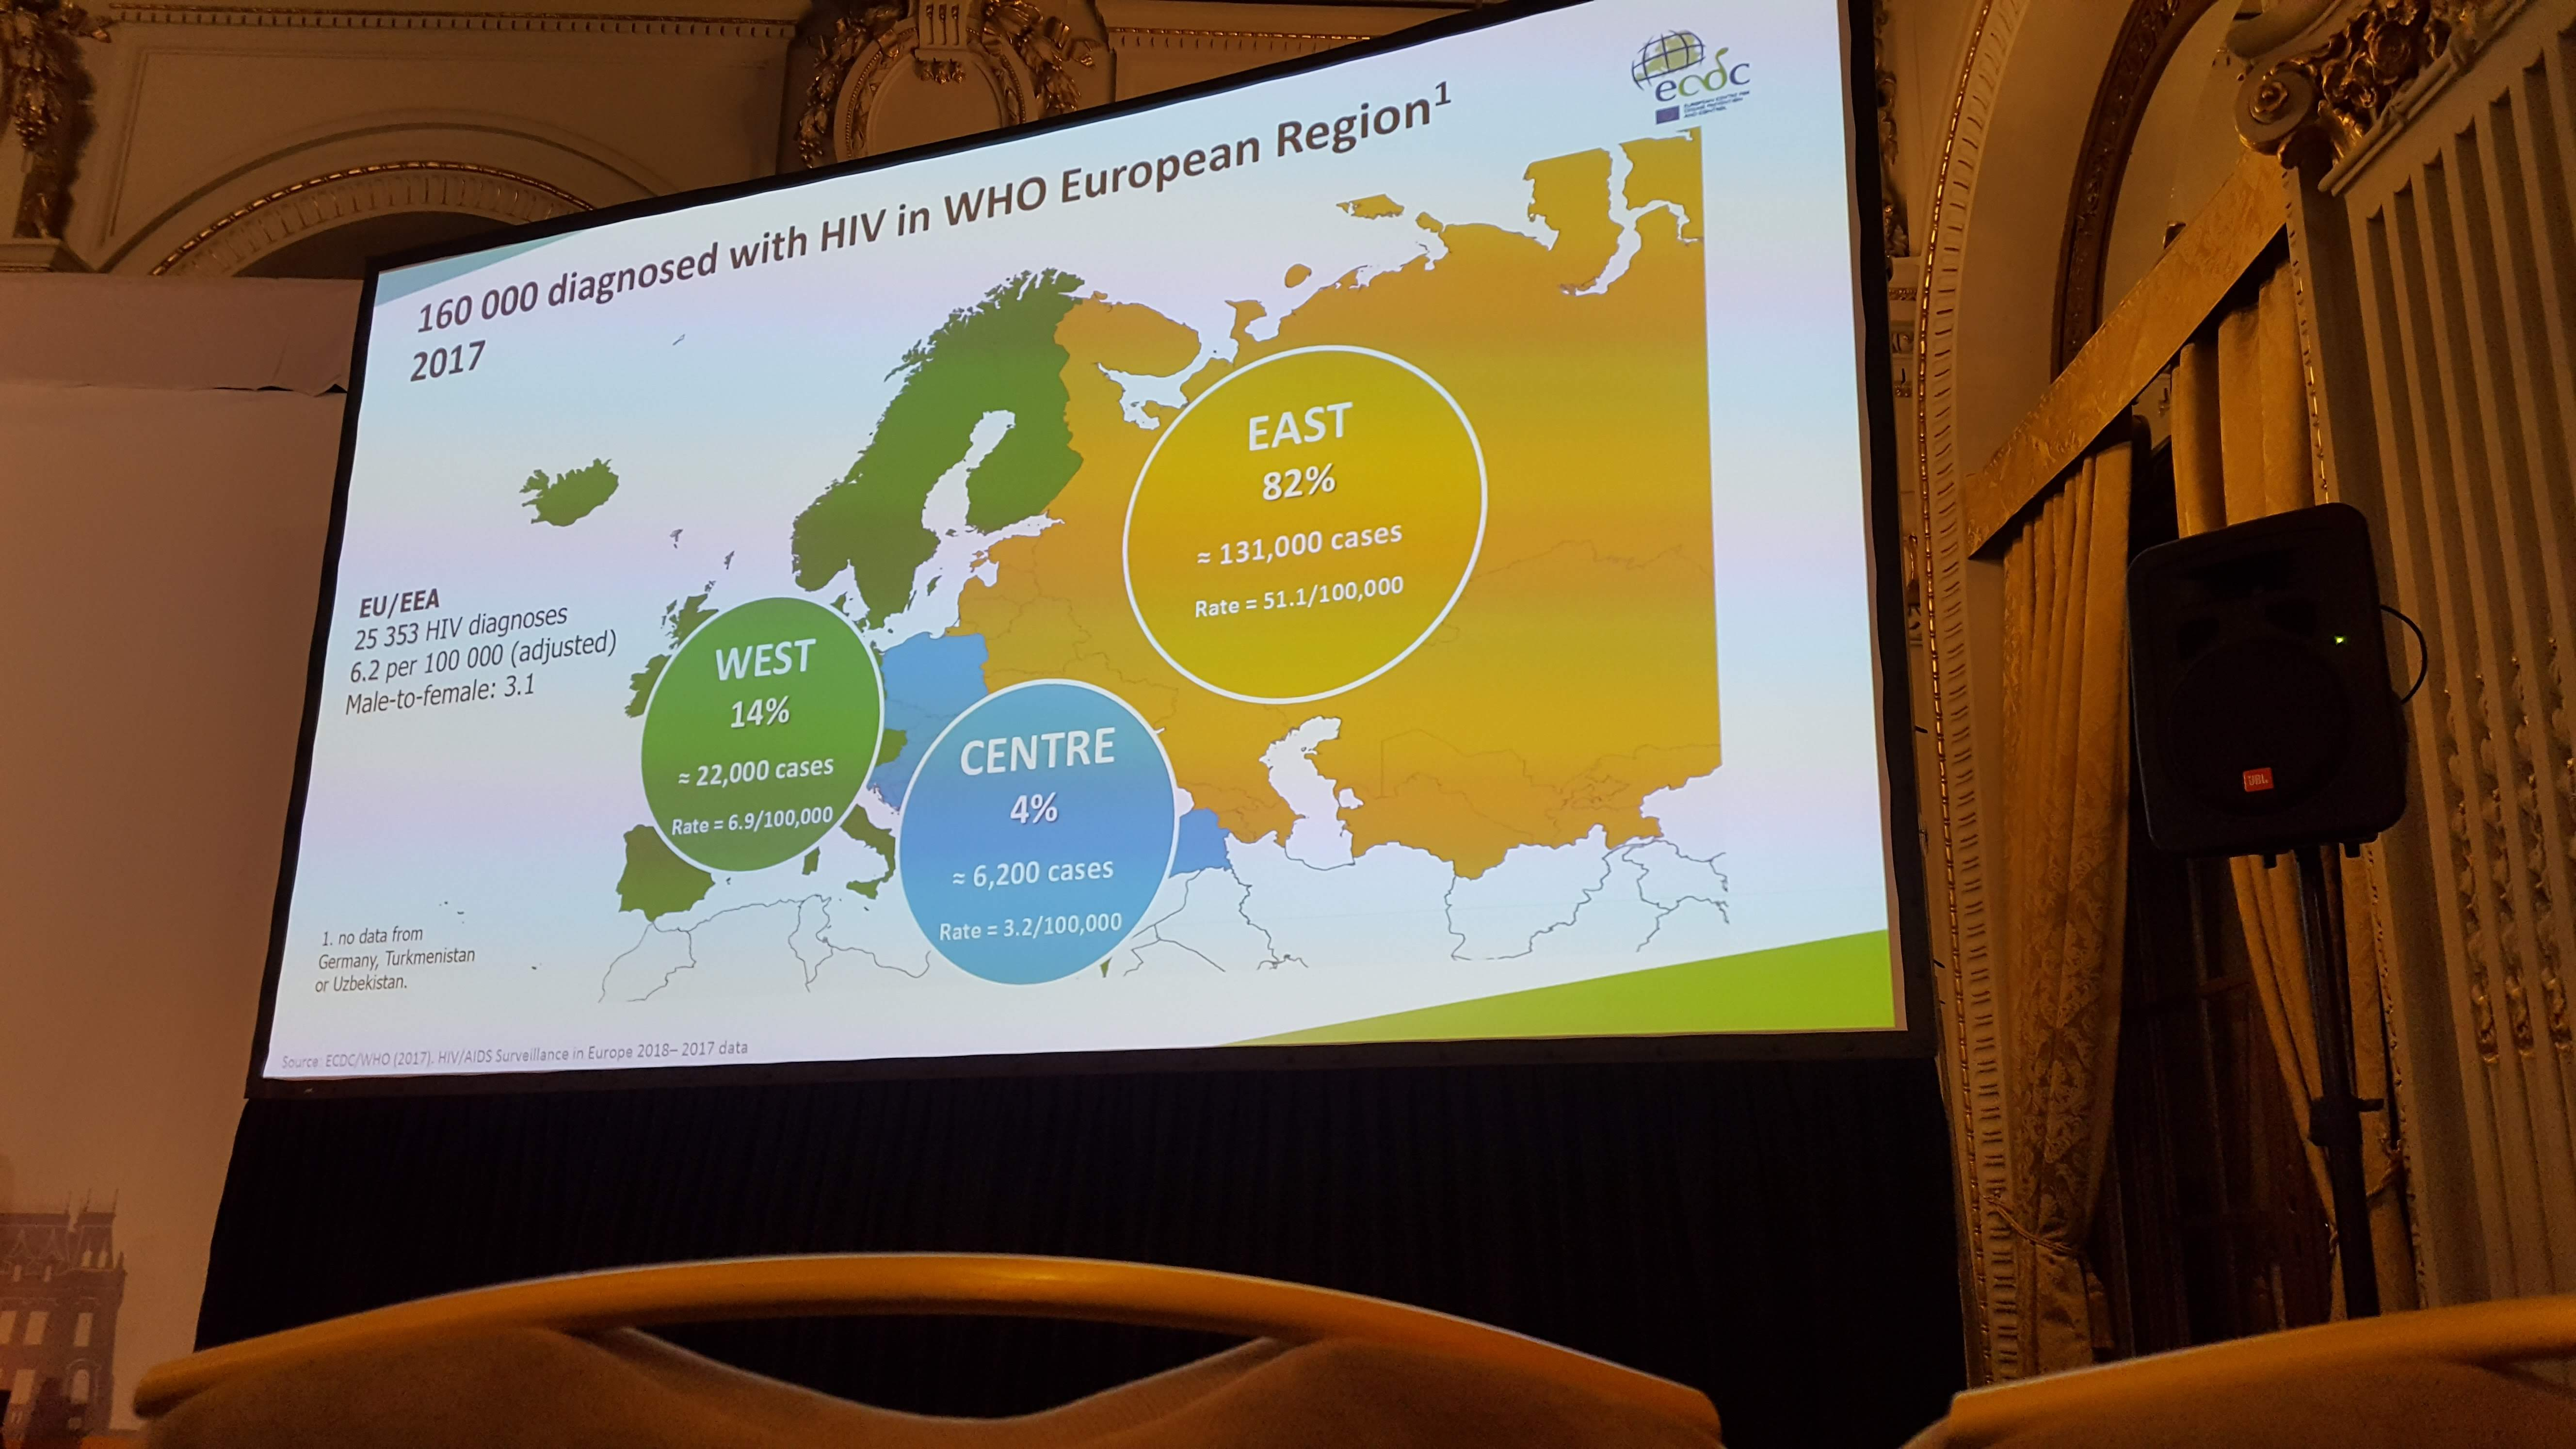 160 000 diagnosed with HIV in WHO European Region, ECDC 2019